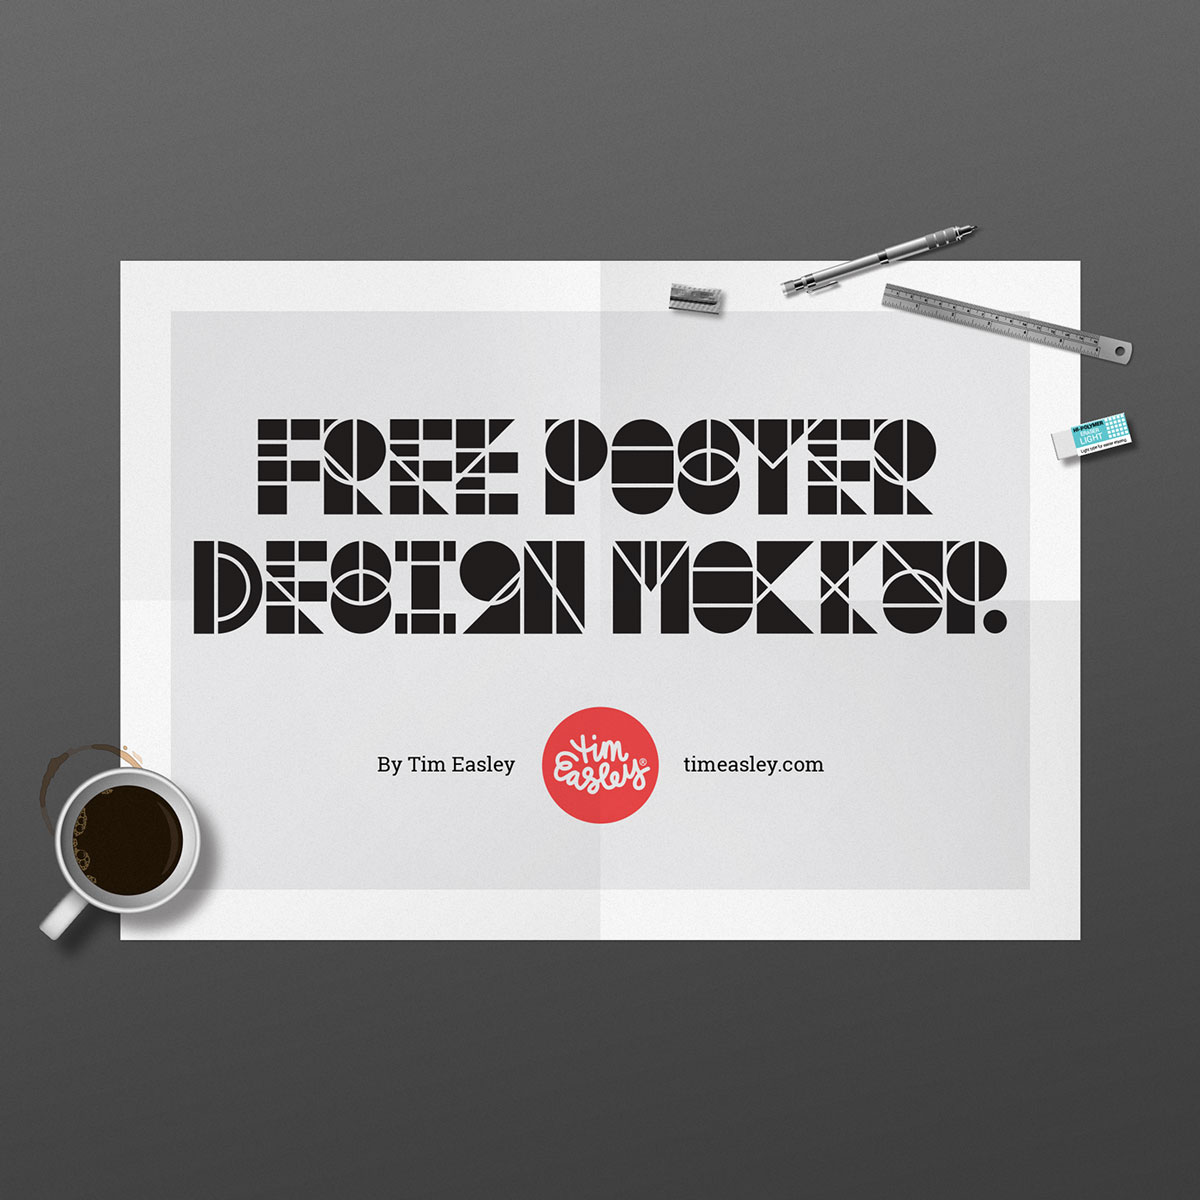 Multipurpose-Poster-Mockups-For-Your-Creative-Poster-Designs-600-3